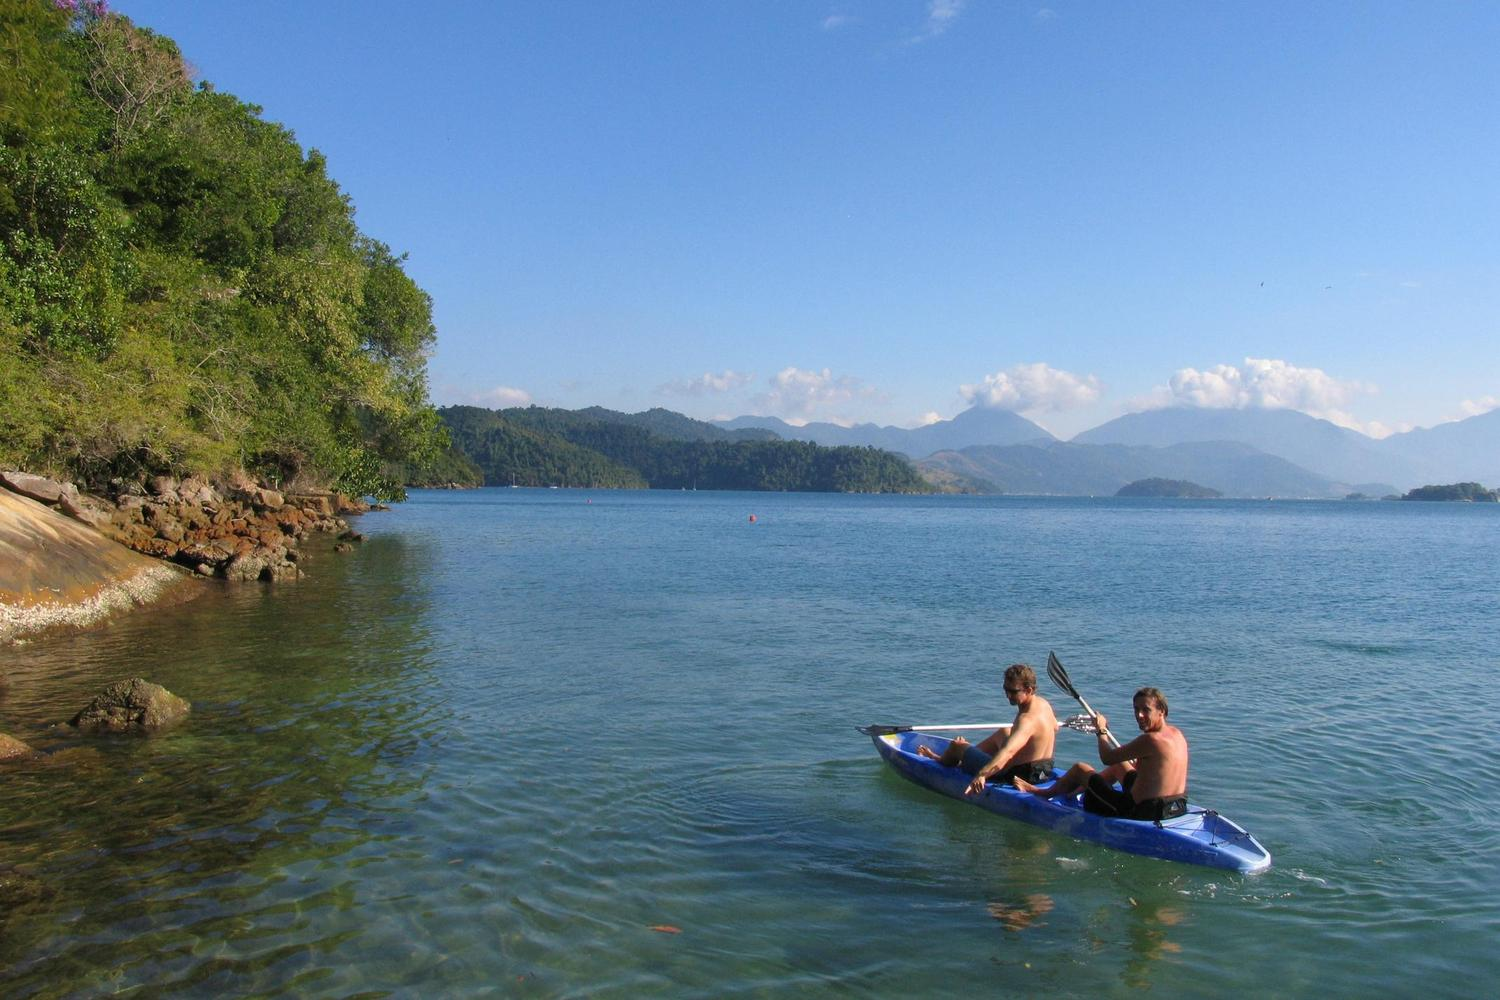 Kayaking the clear waters near Paraty